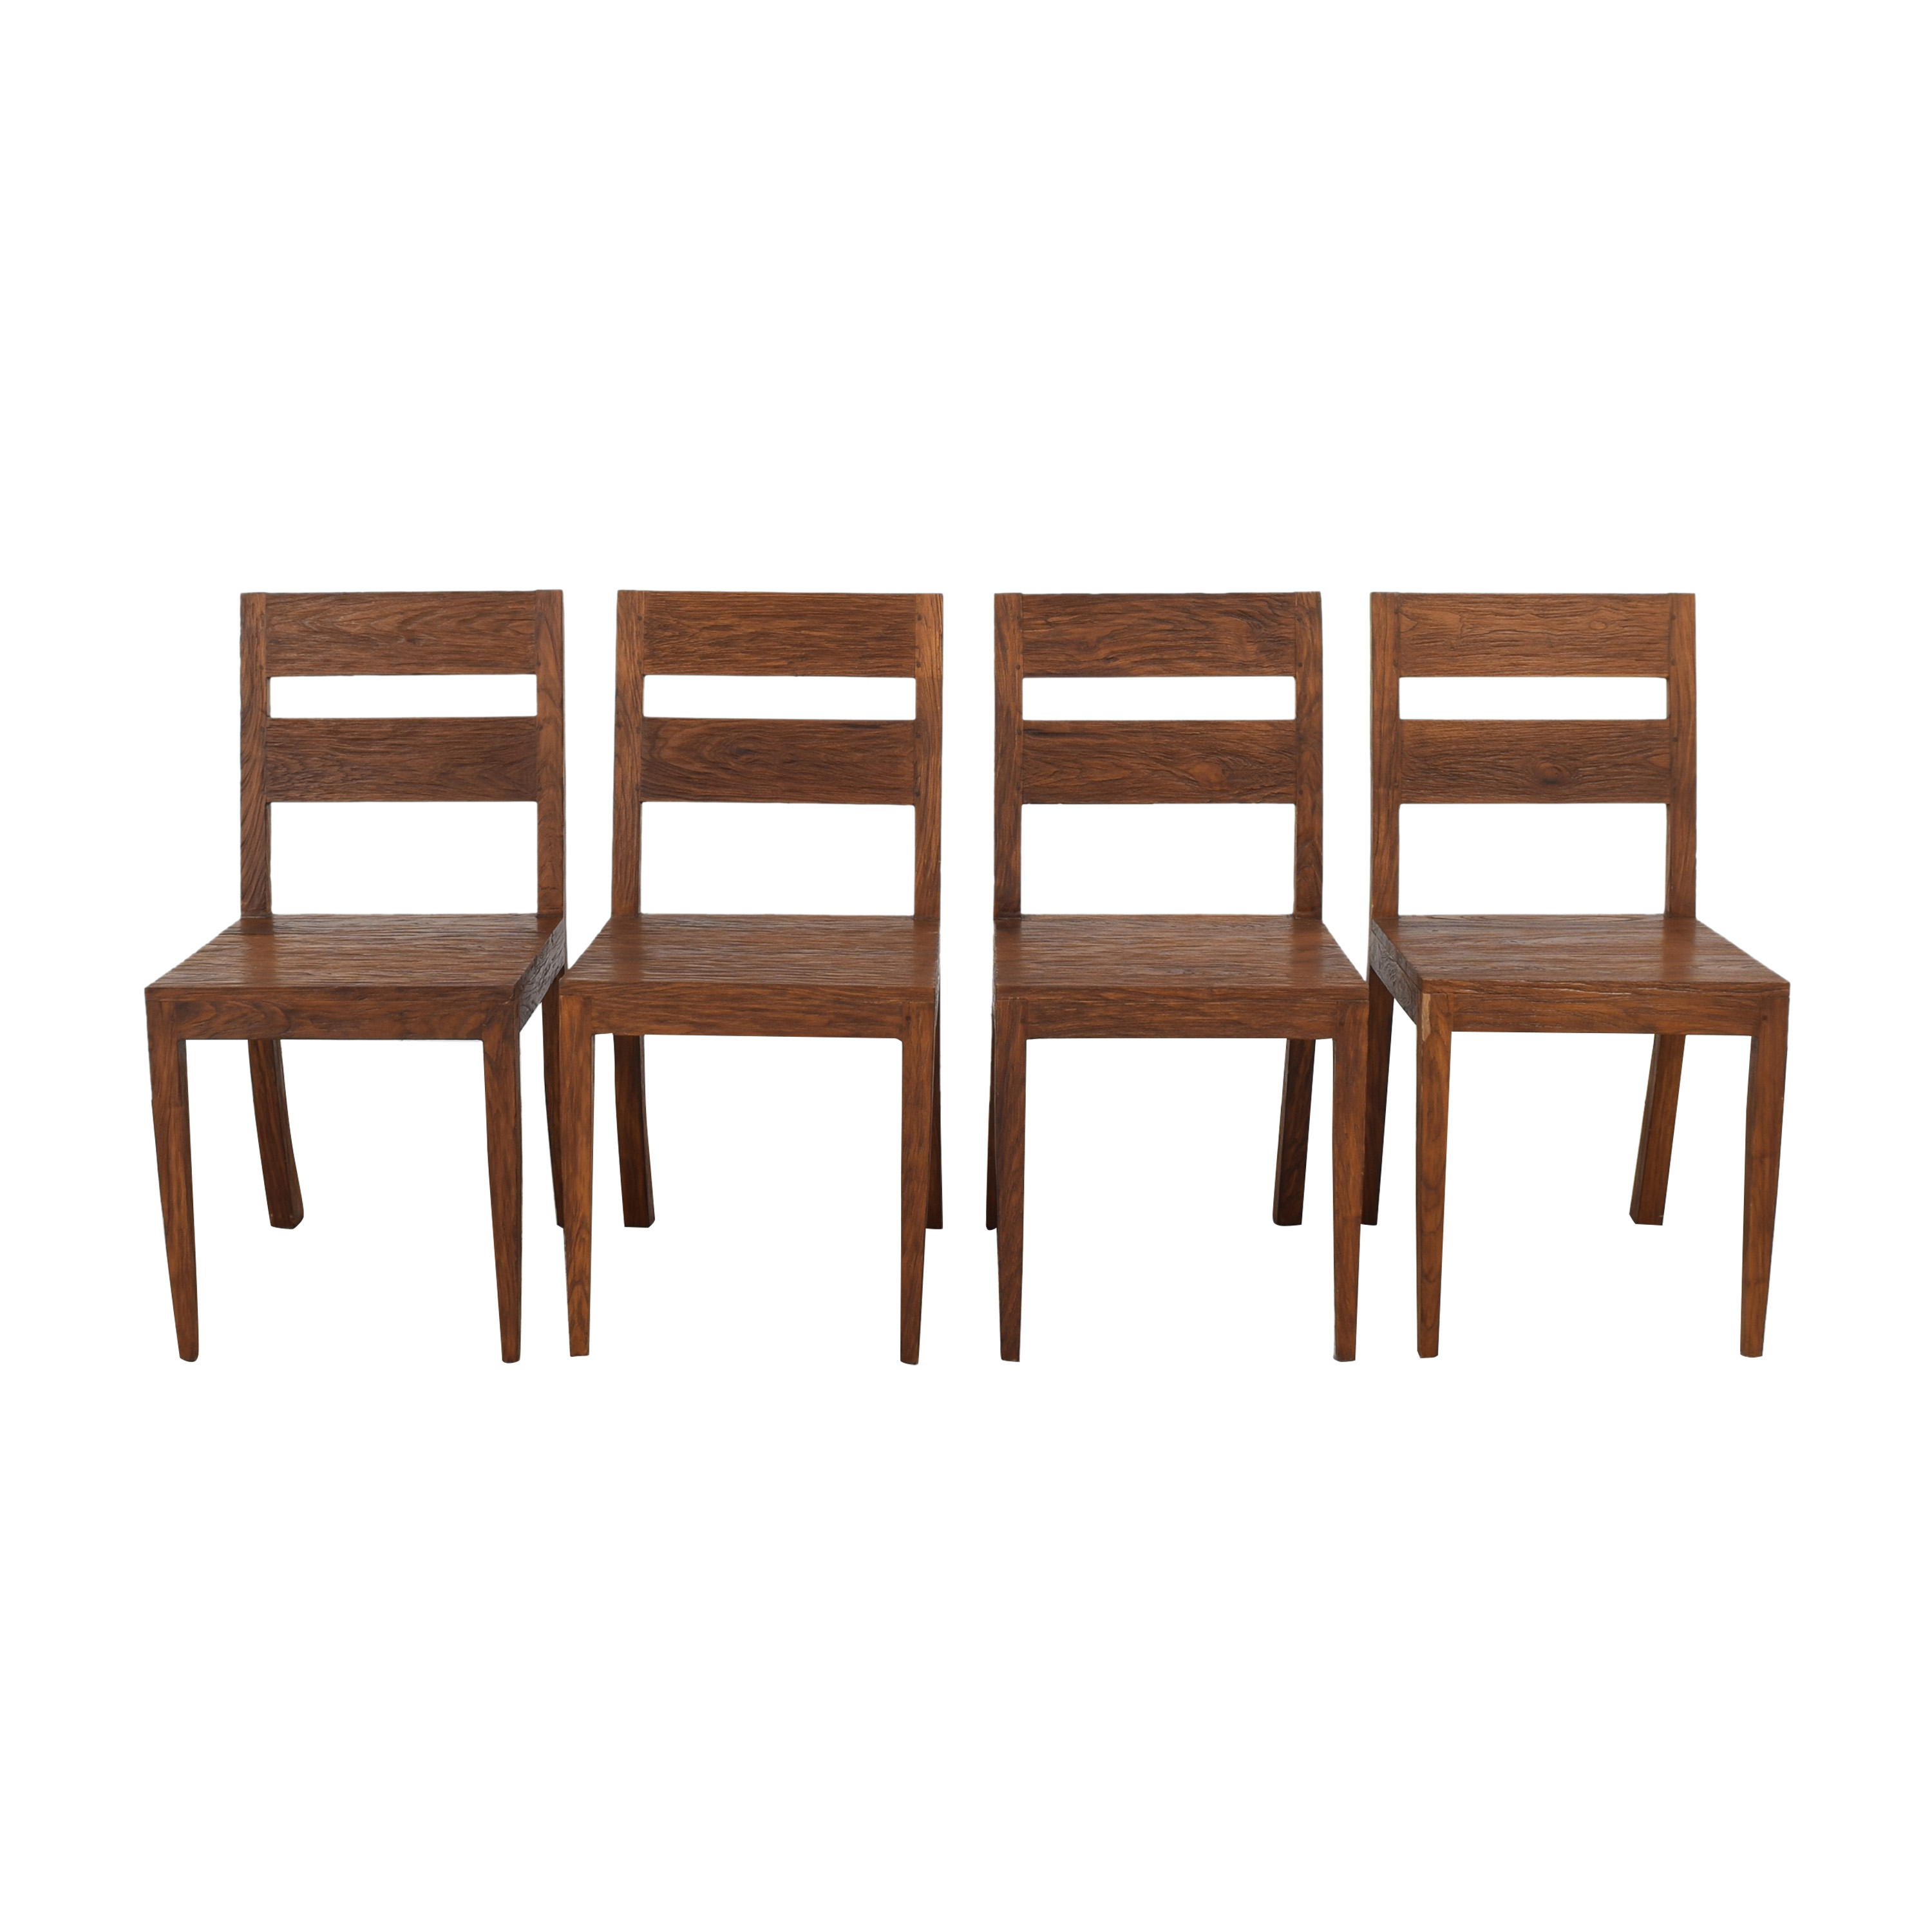 Wood Dining Chairs coupon